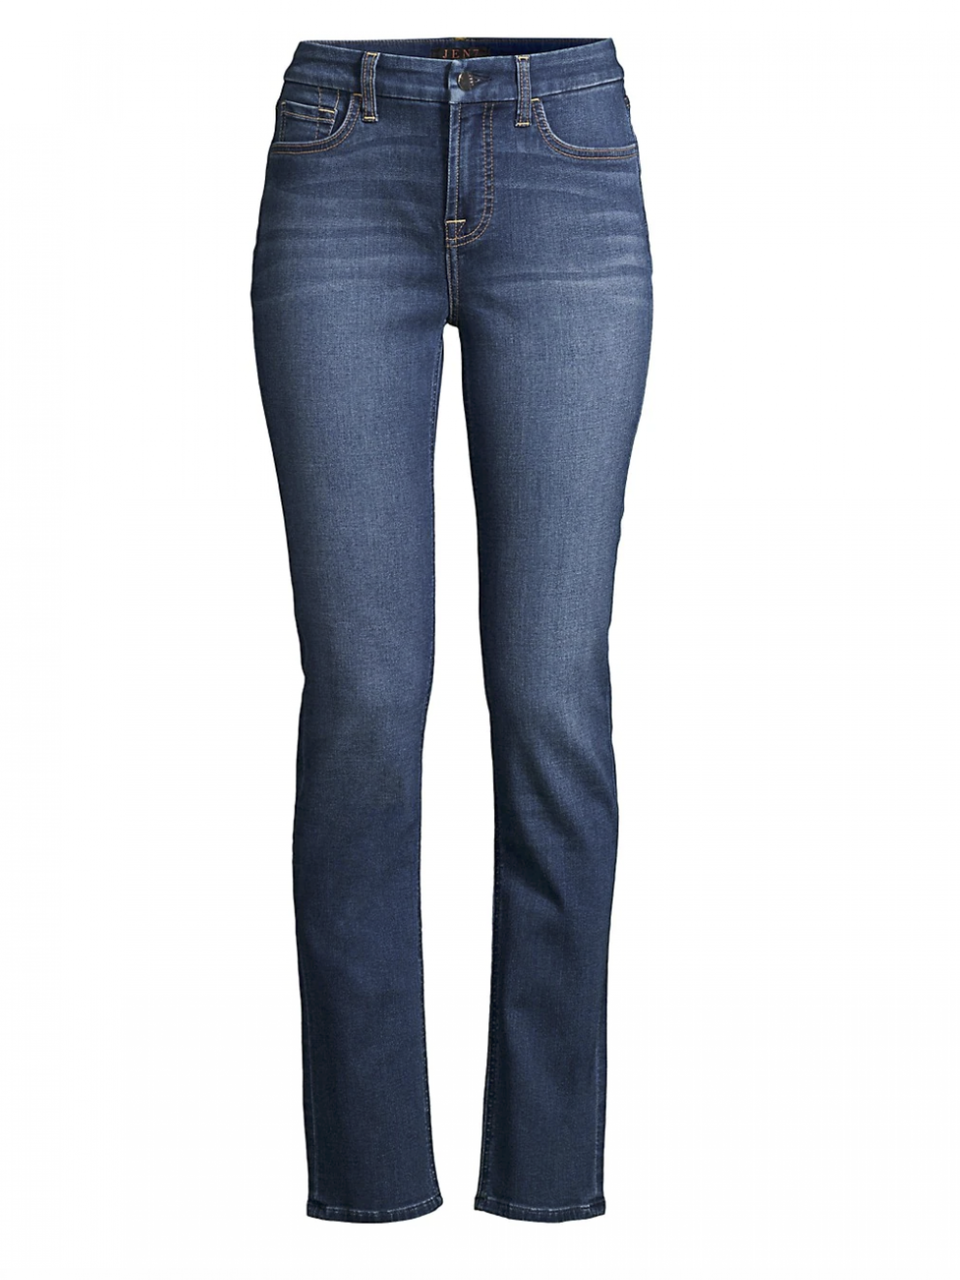 5 Jeans You'll Love If You Aren't Ready To Quit Skinny Jeans